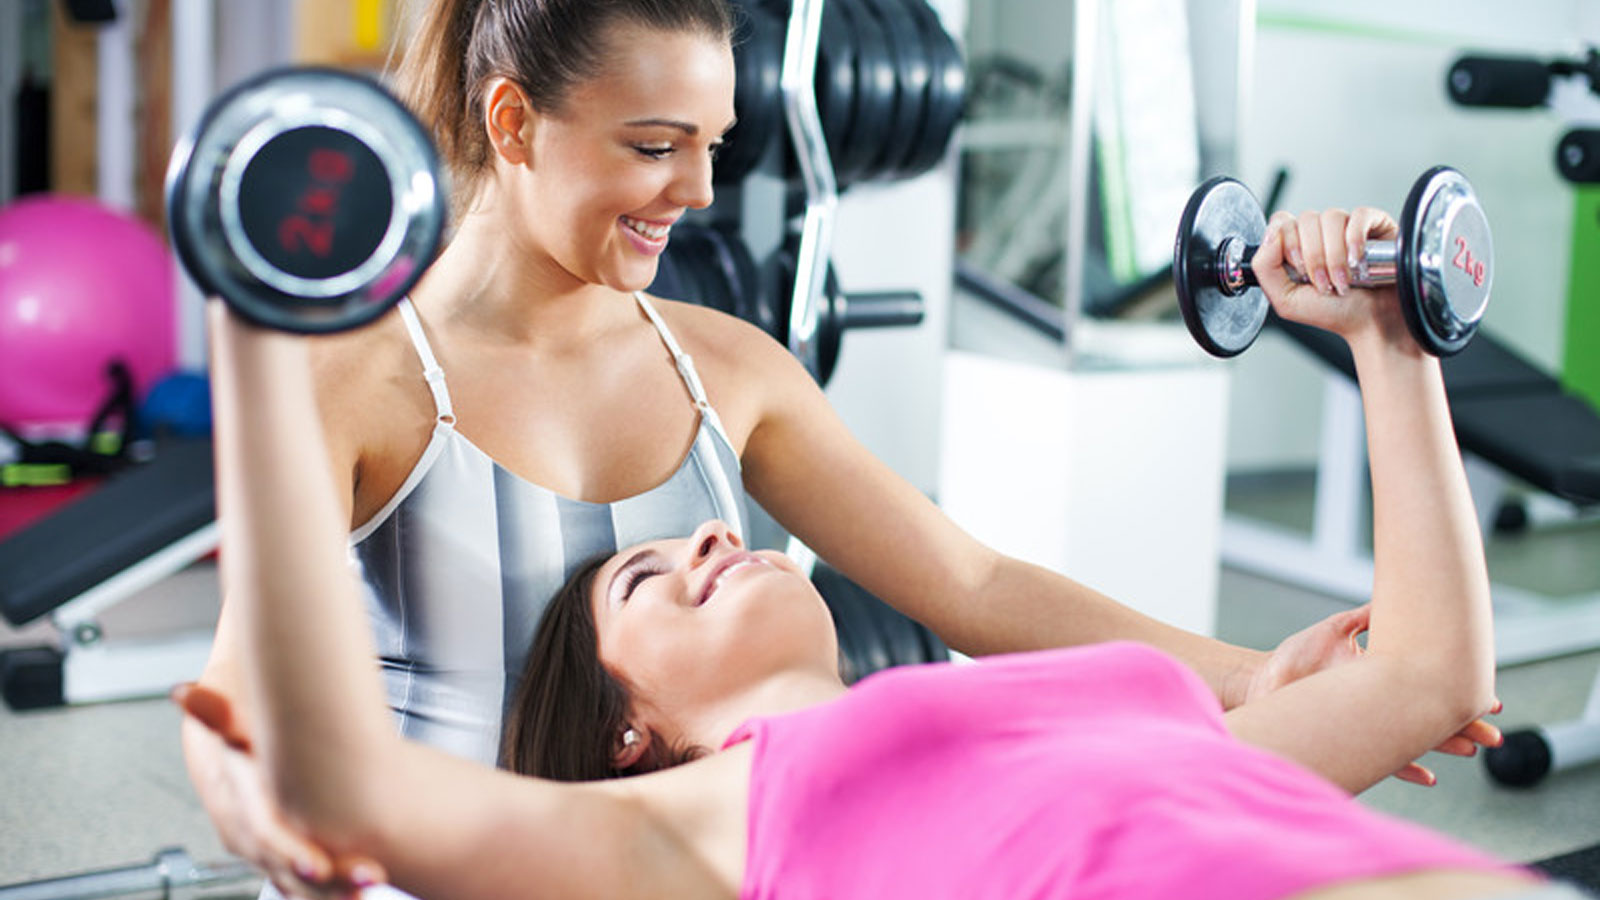 Grand Island Personal Trainer